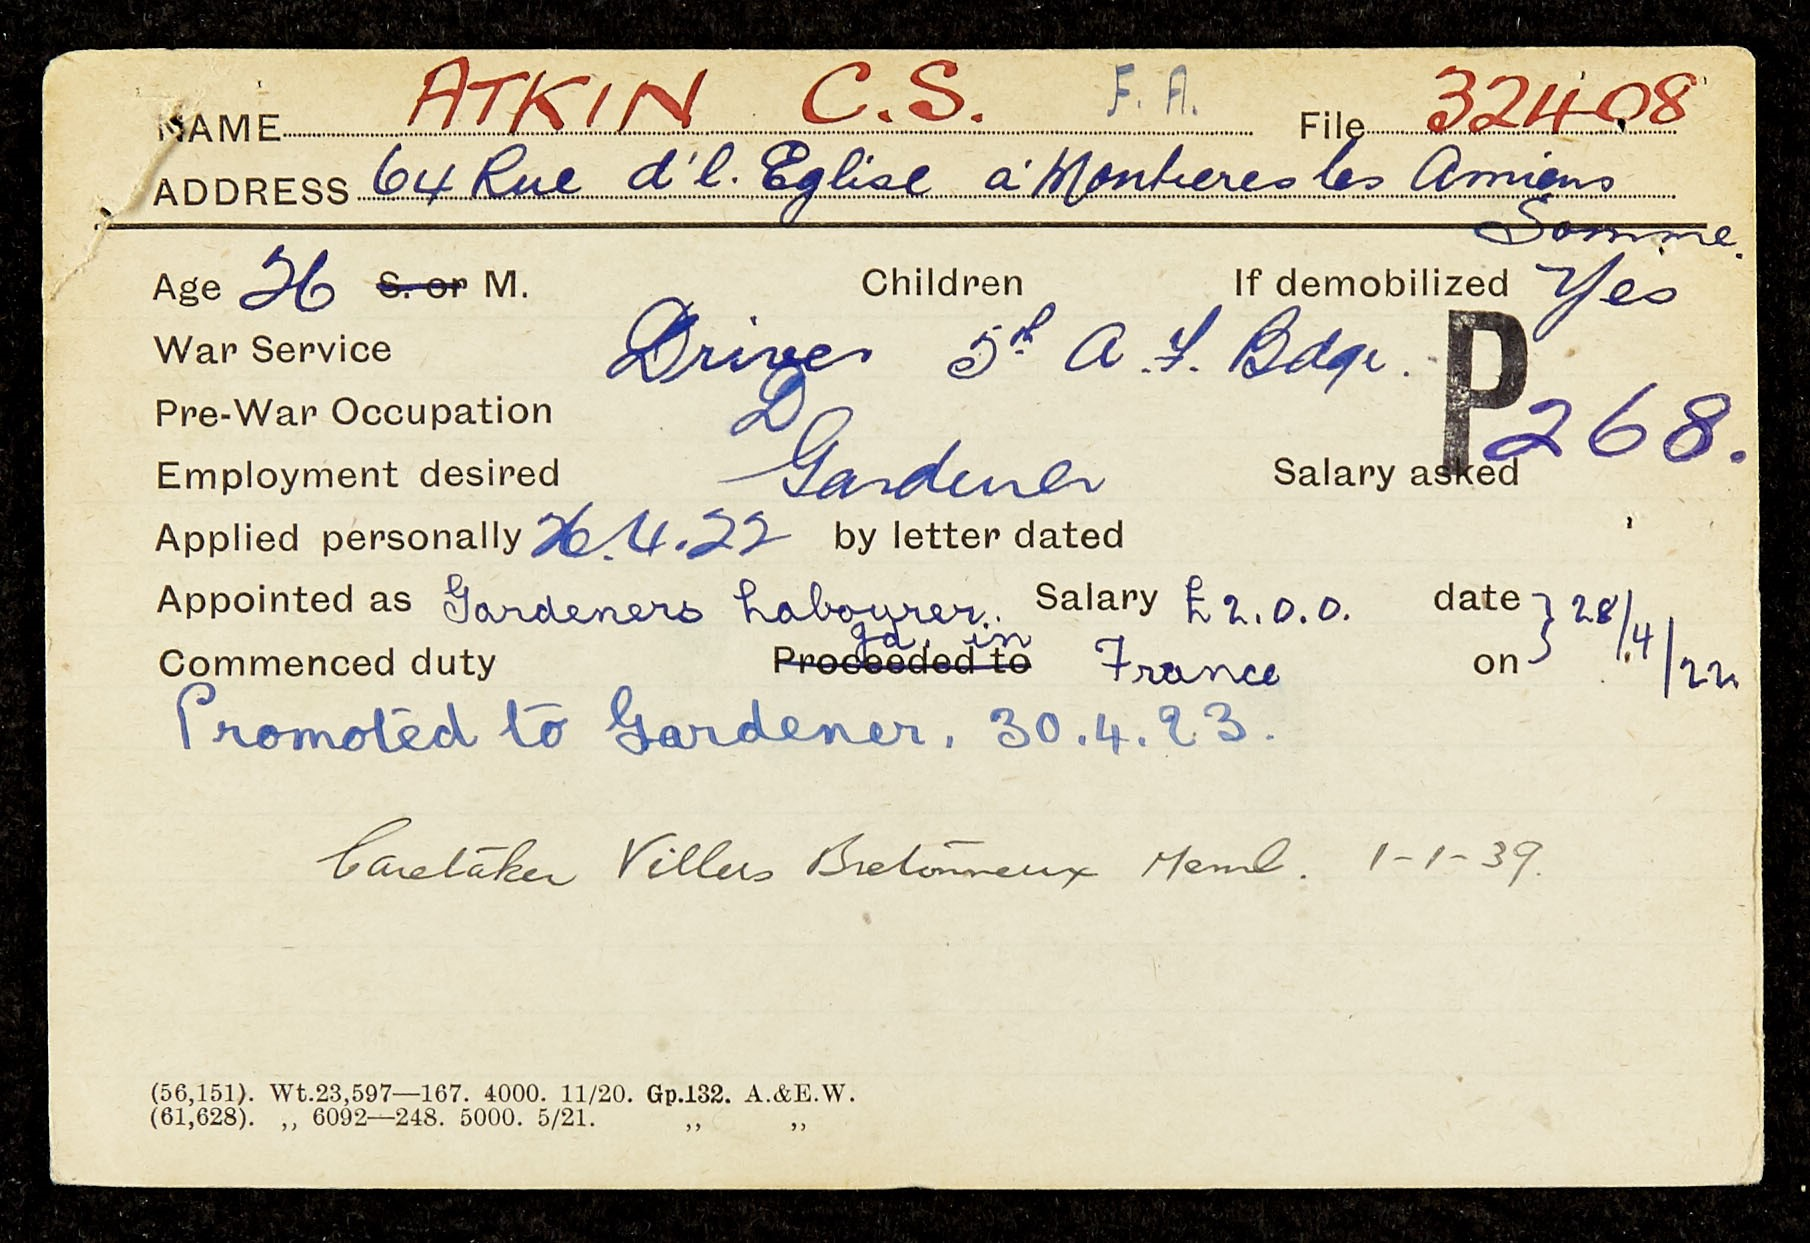 Part of Atkin's service record from the Commonwealth War Graves Commission.